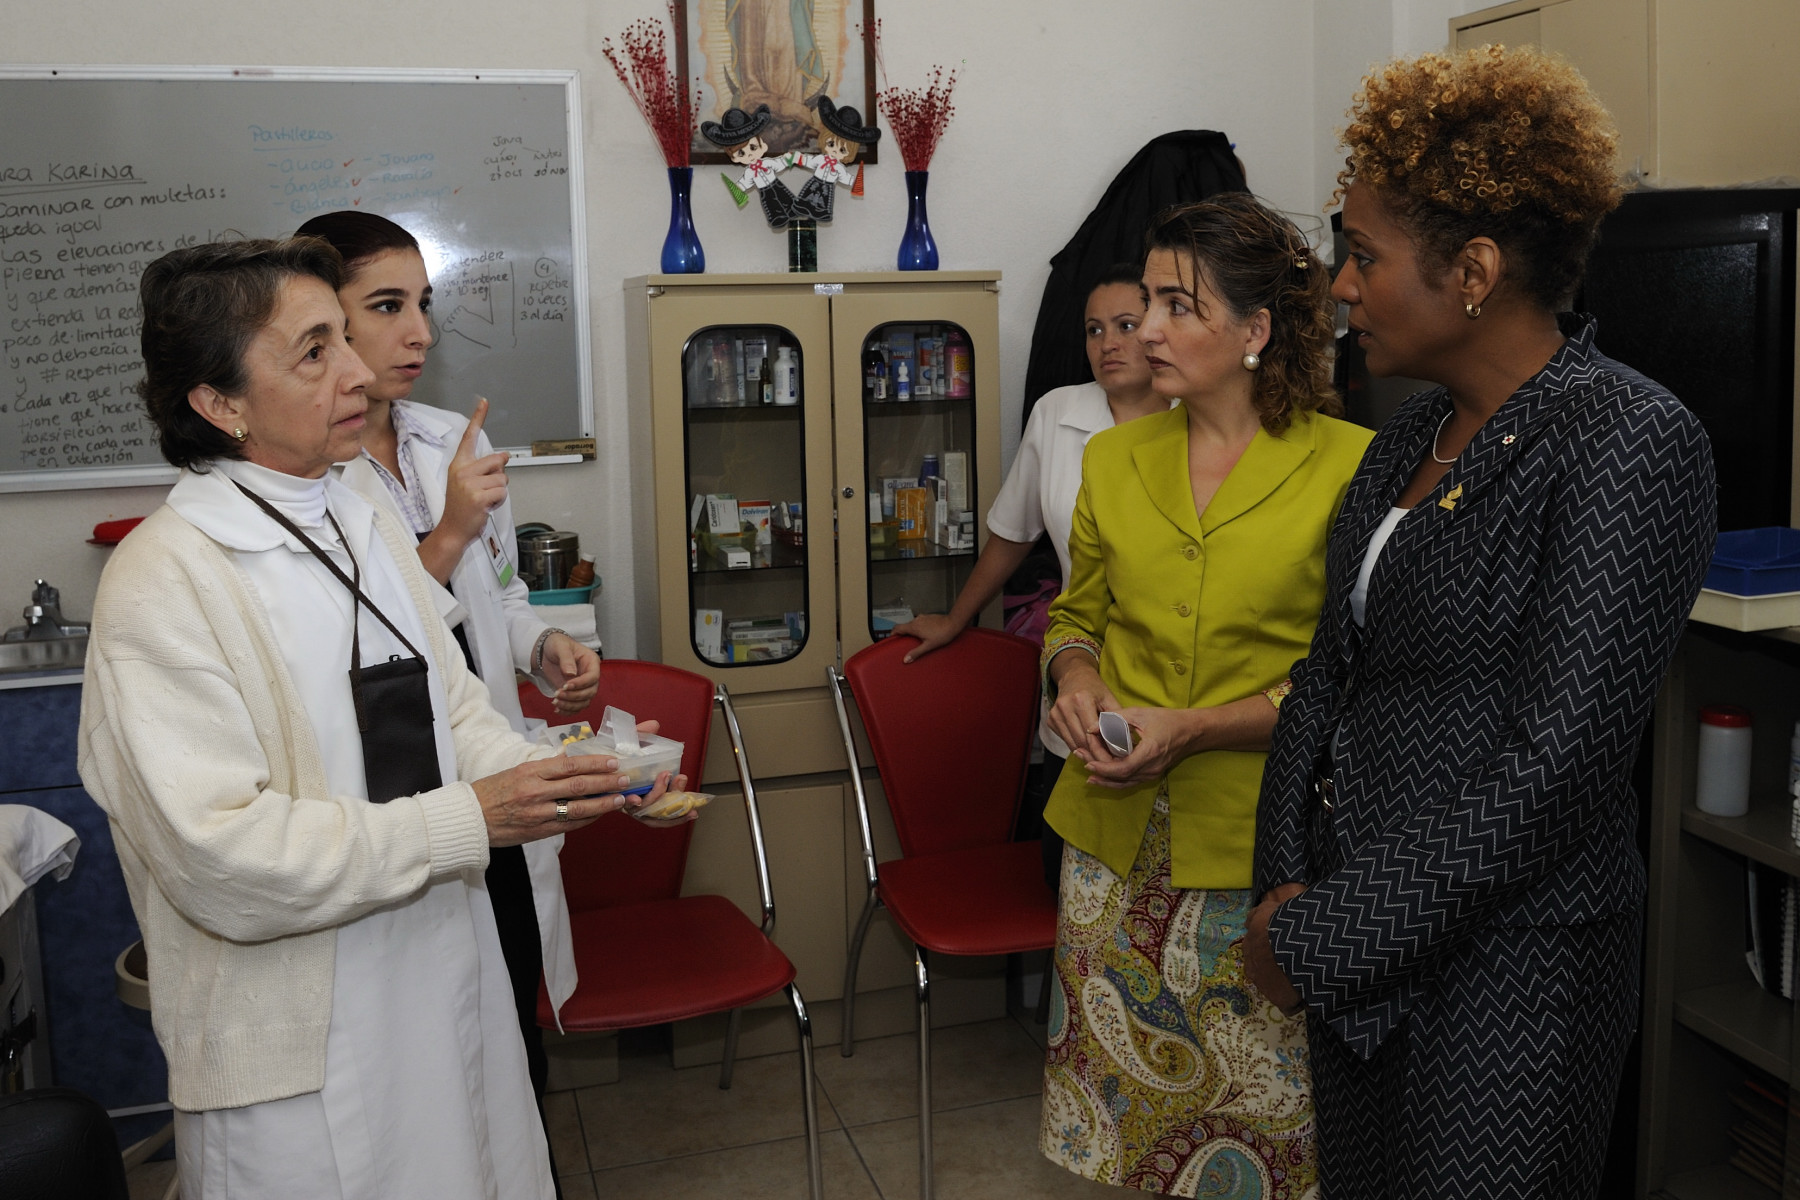 During her visit, the Governor General had the opportunity to meet with medical staff. Founded in 1986 by education specialist Rosa Maria Rivero, the purpose of the centre  is to increase the children's life expectancy, which is limited by a social background that does not enable them to access antiretroviral treatments, or education and schooling that could provide an opening to the labour market. For 25 years, the Canada Fund for Local Initiatives has supported the efforts of Mexican civil society organizations such as La Casa de la Sal. 